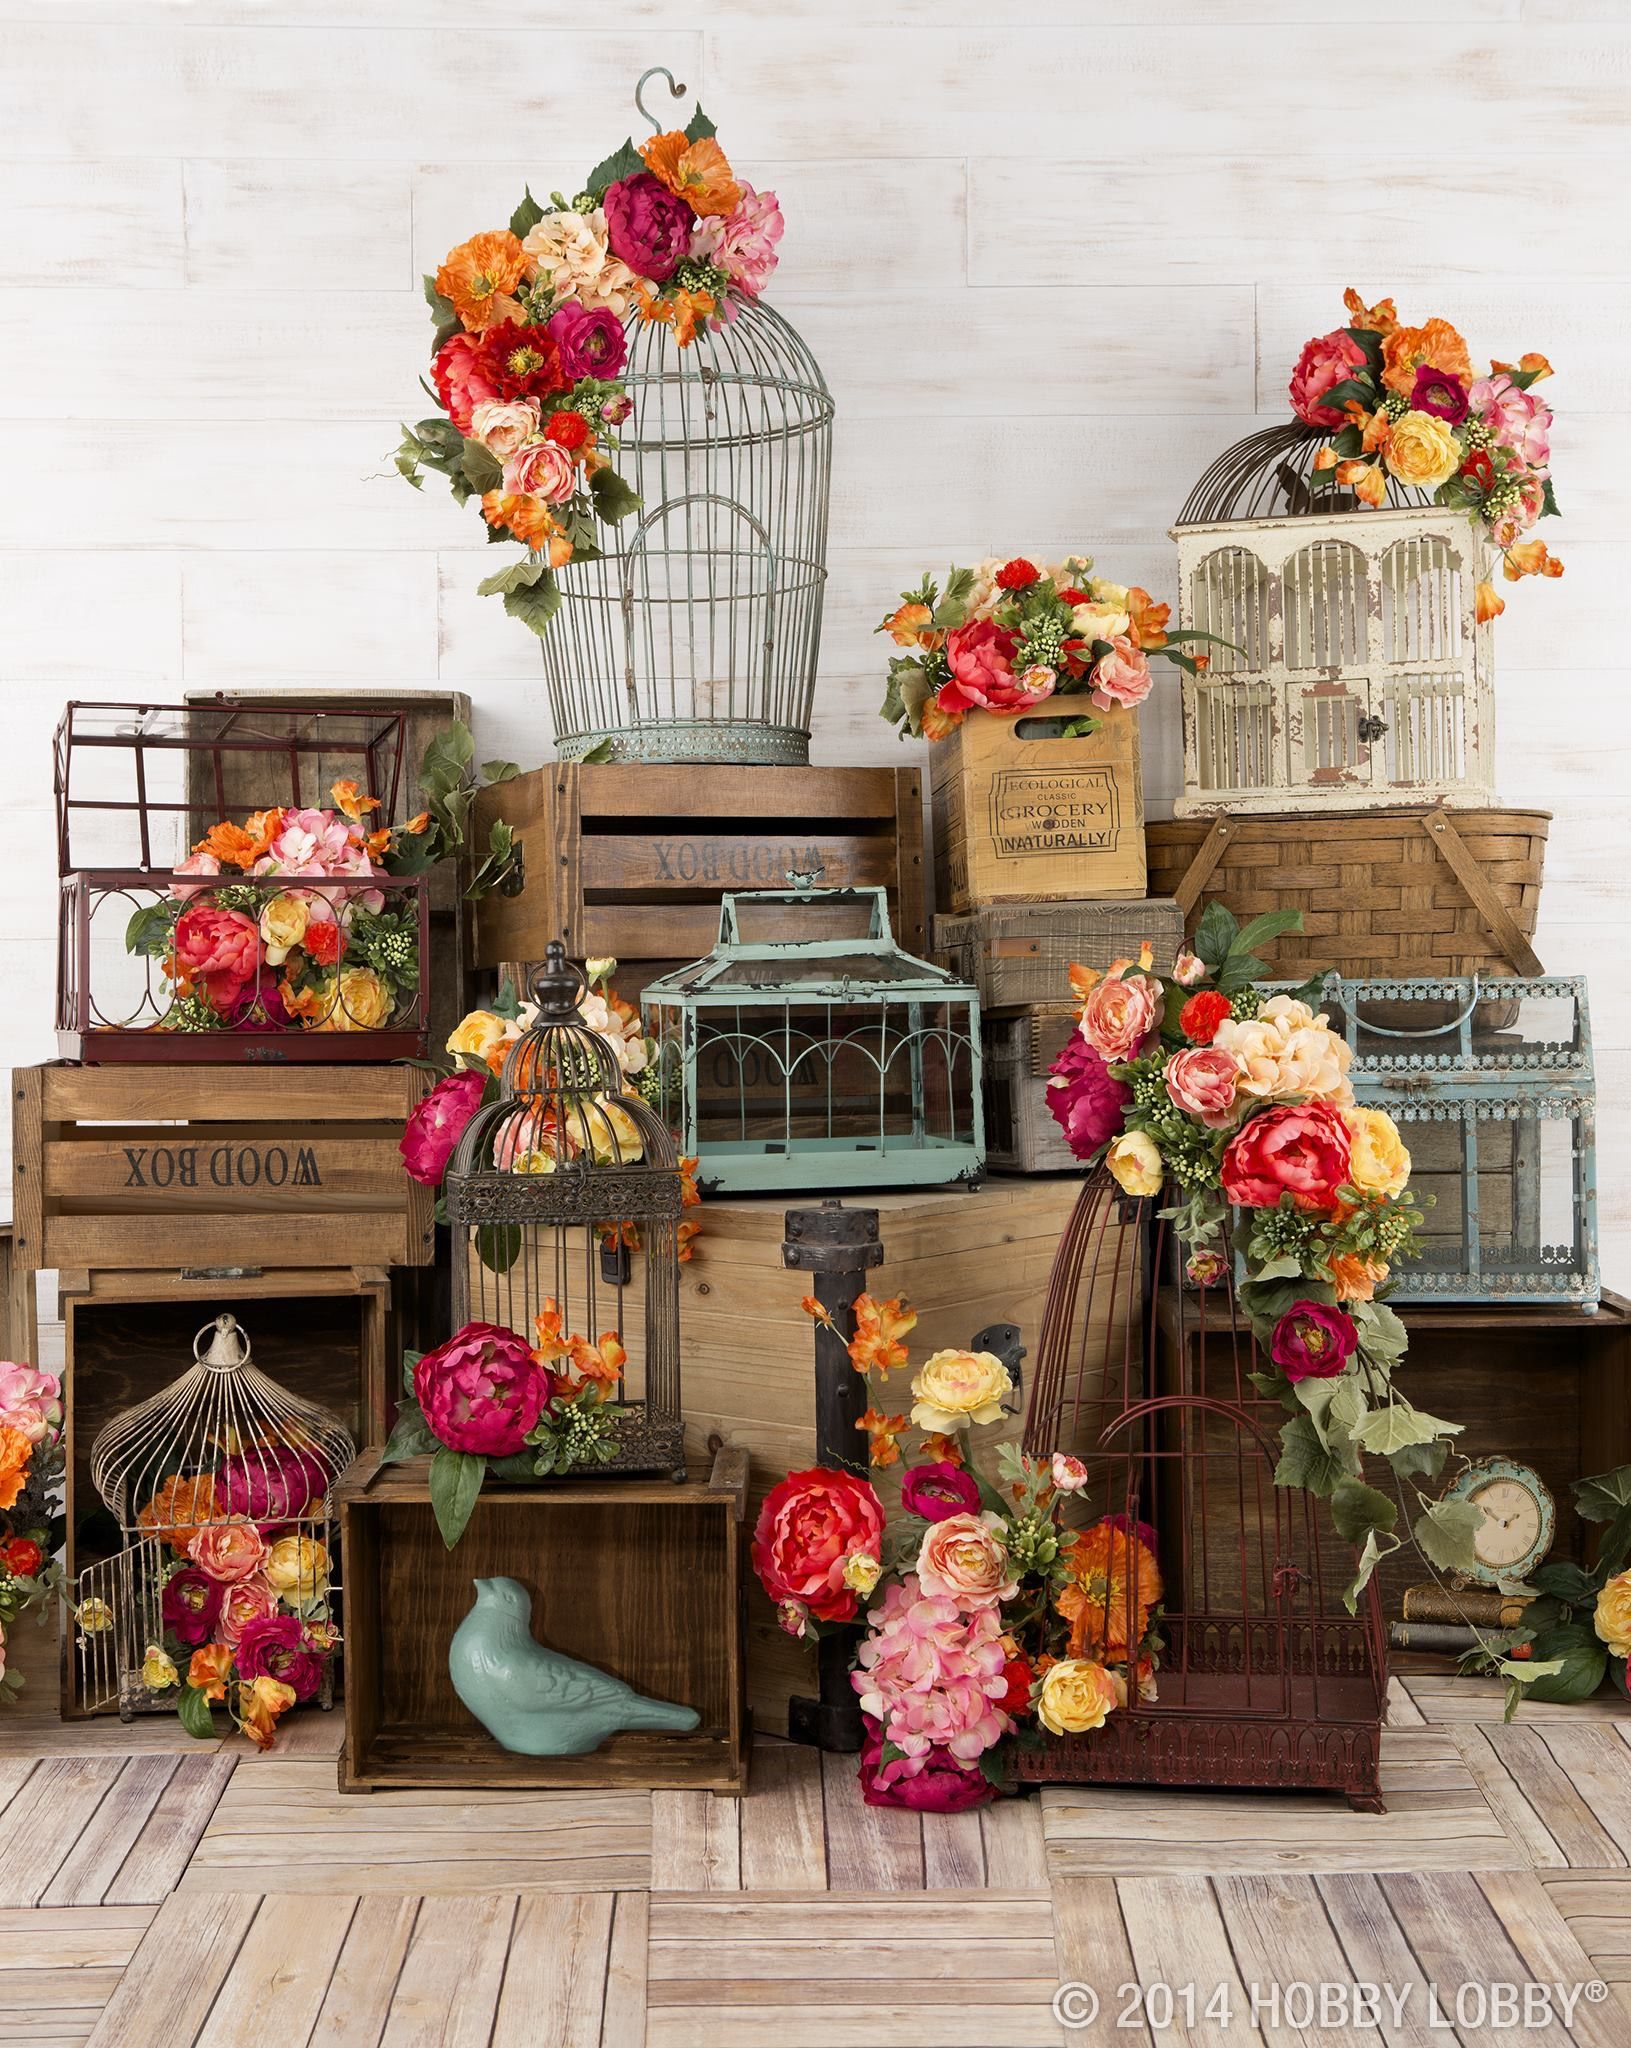 Cover A Birdcage With Big Blooms For Lovely Springtime Decor